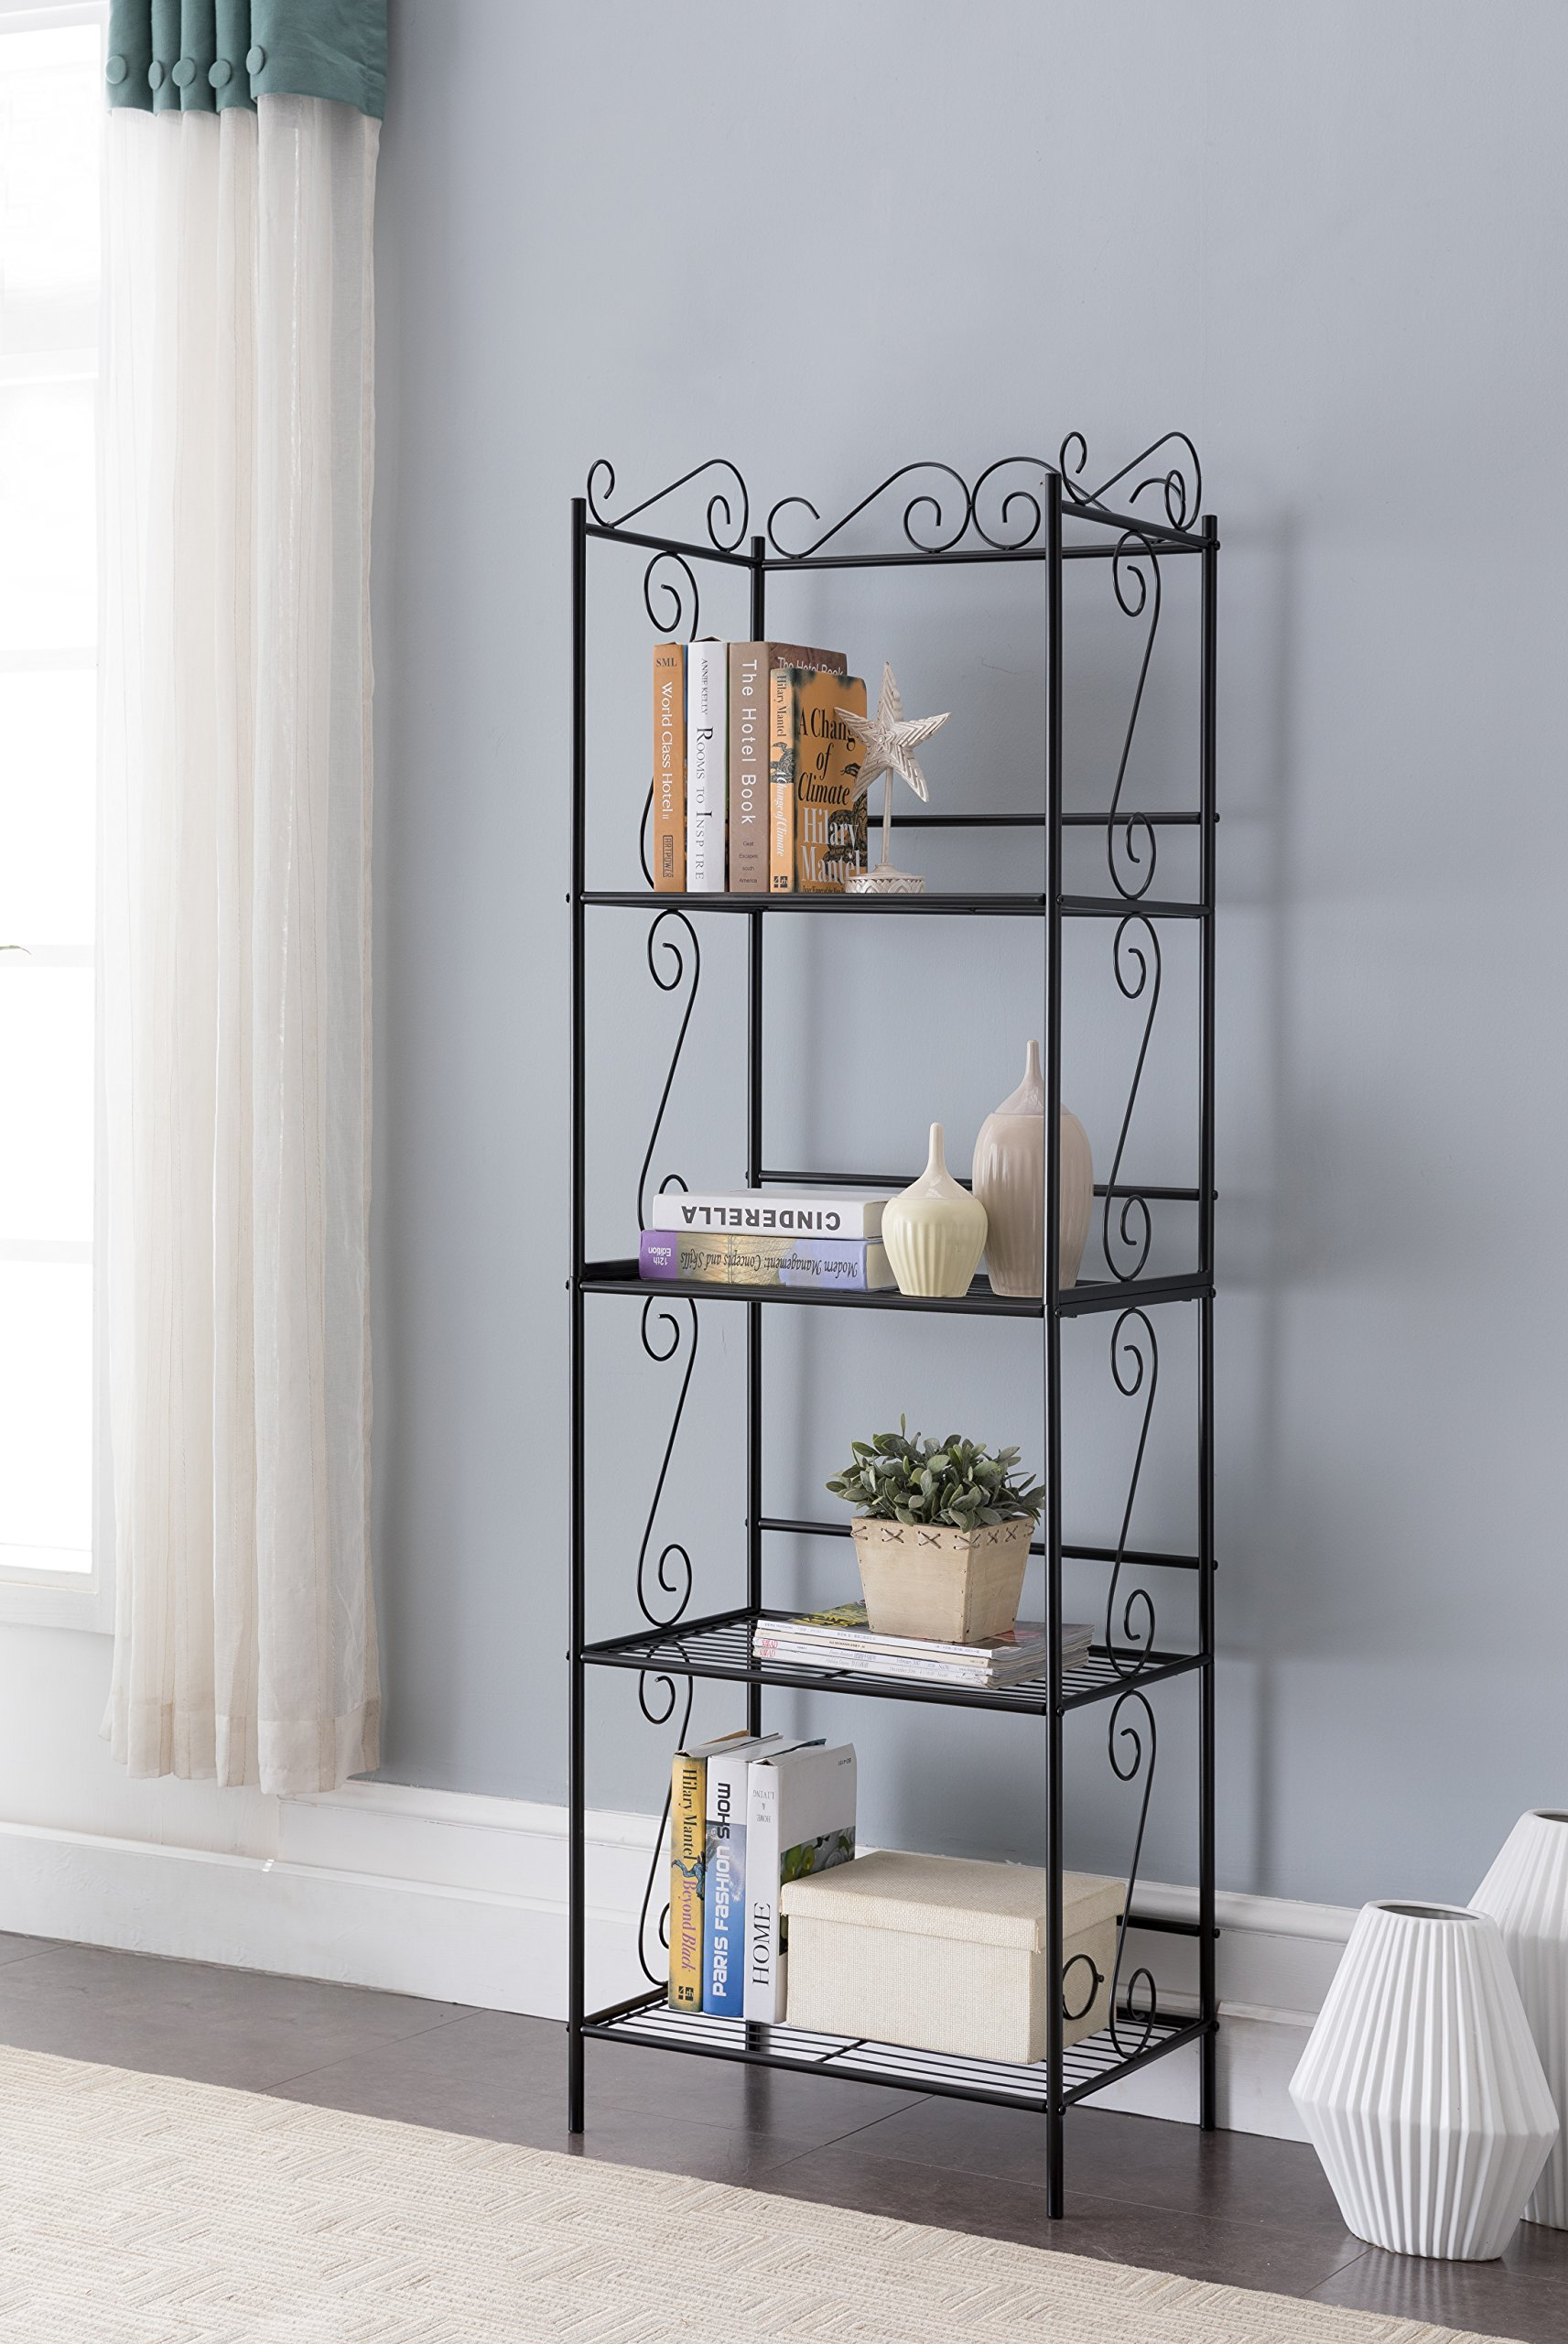 Black Metal 4 Tier Free Standing Bakers Rack Dining Laundry Room Bookcase Bookshelf Organizer